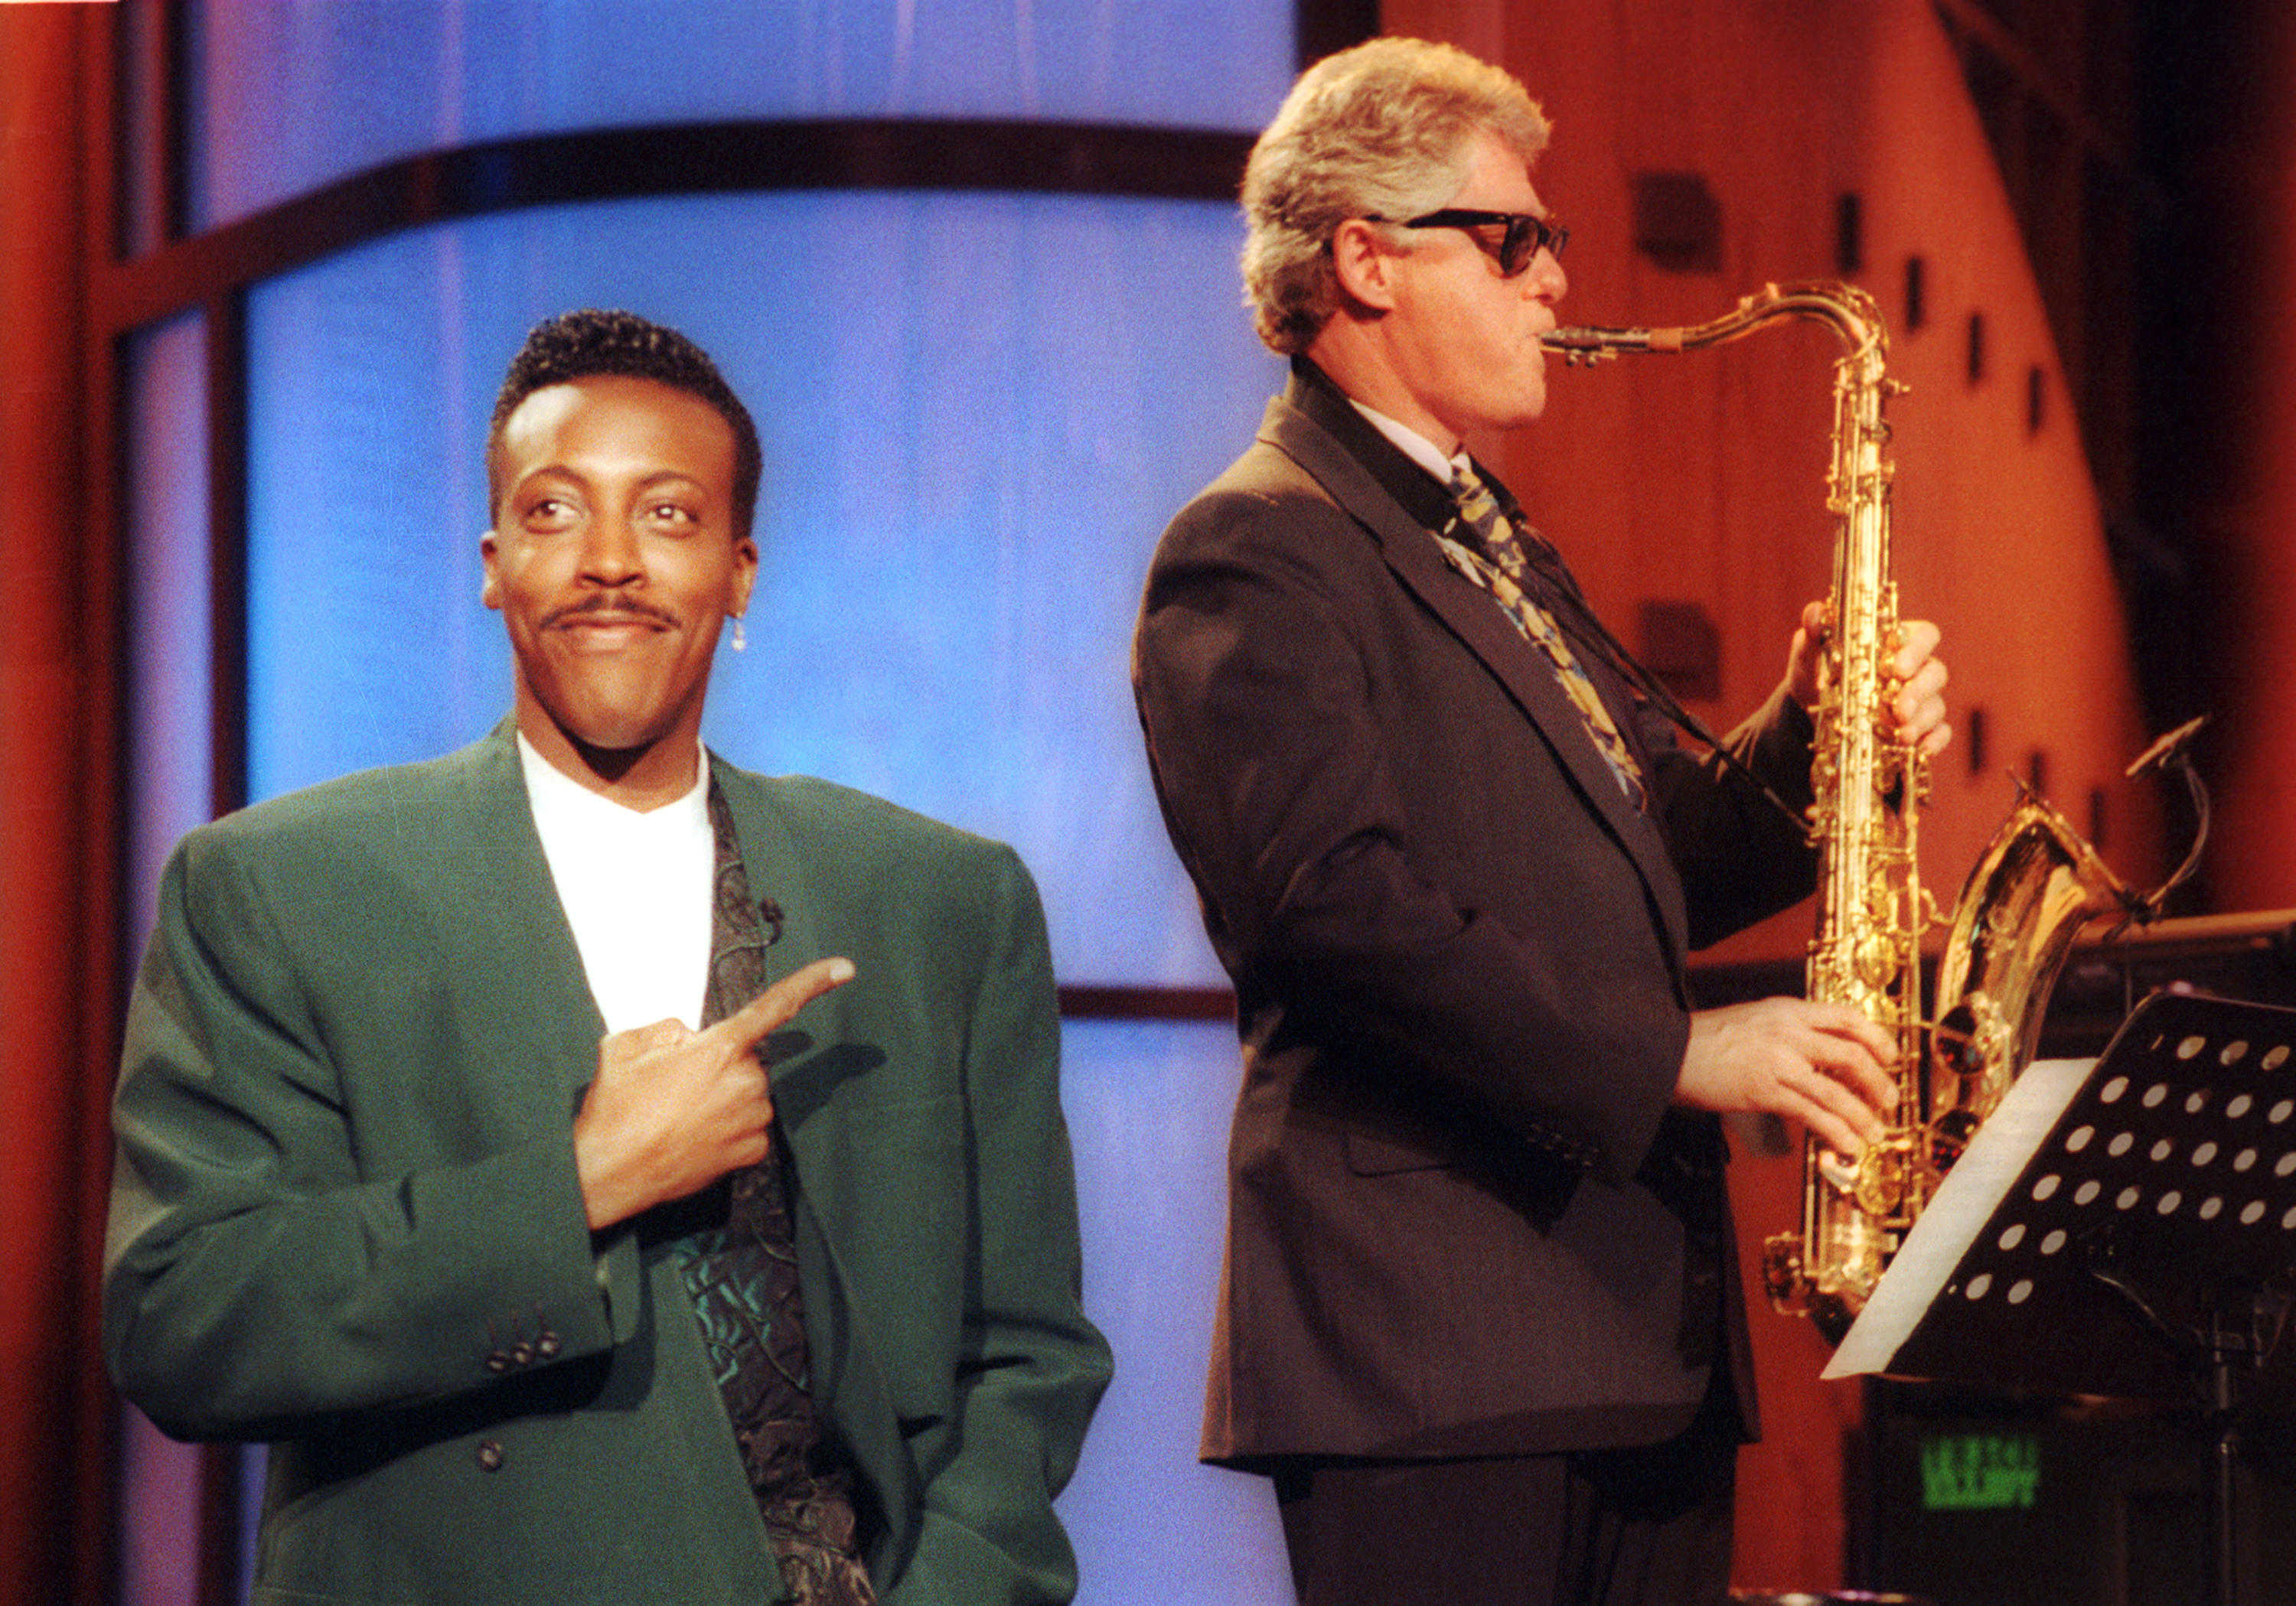 Bill Clinton plays the sax - Iconic presidential campaign moments - CBS News